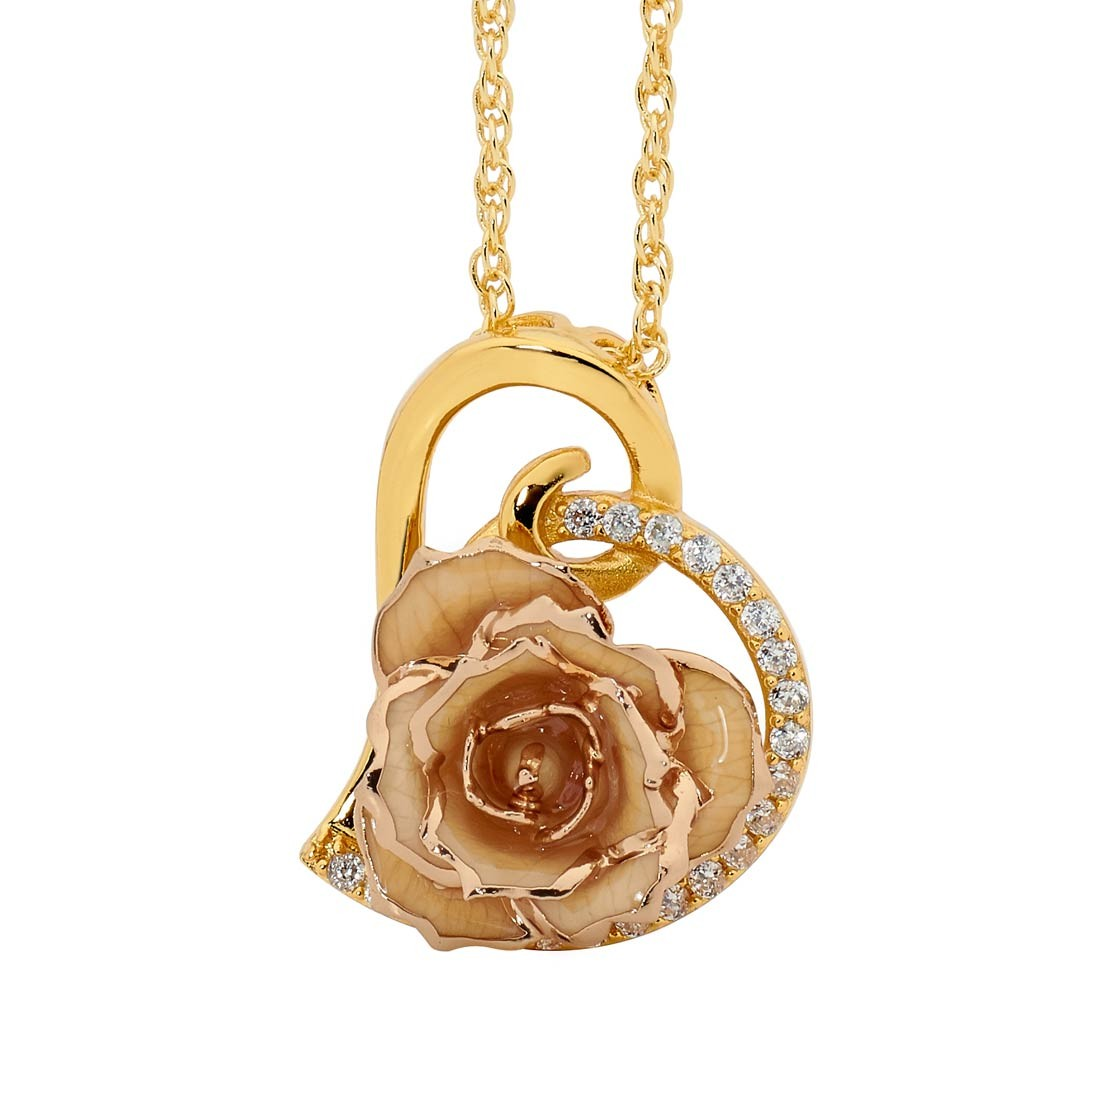 Glazed rose heart pendant 24k gold white glazed rose heart pendant 24k gold aloadofball Image collections